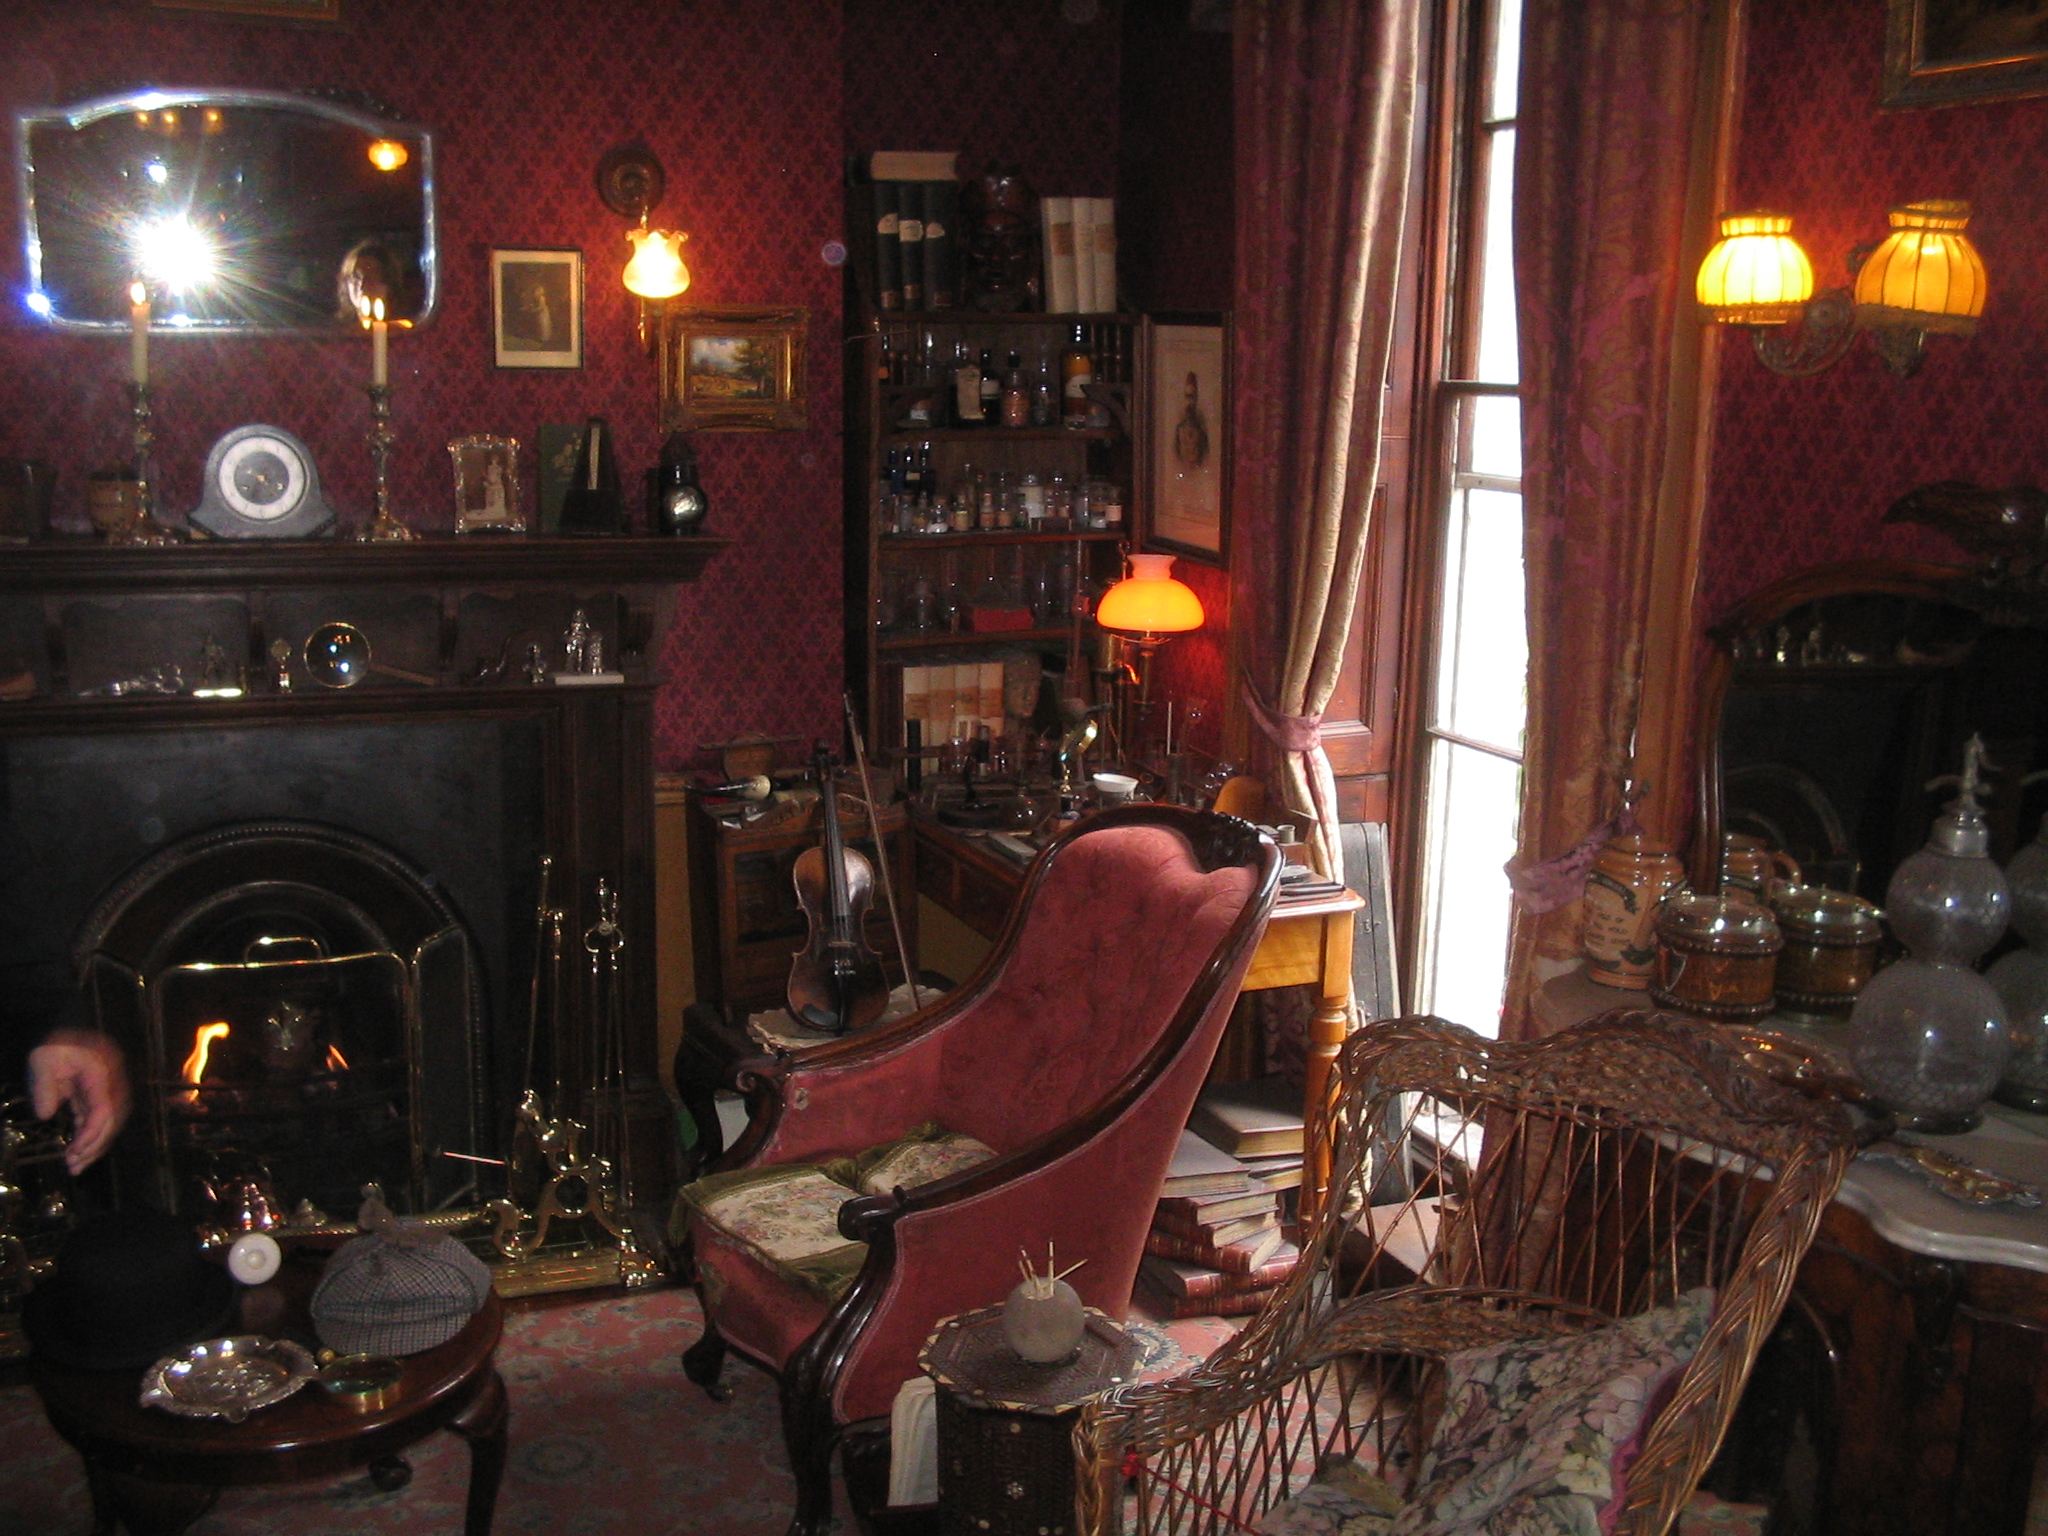 The Murder Room The Heirs of Sherlock Holmes Gather to